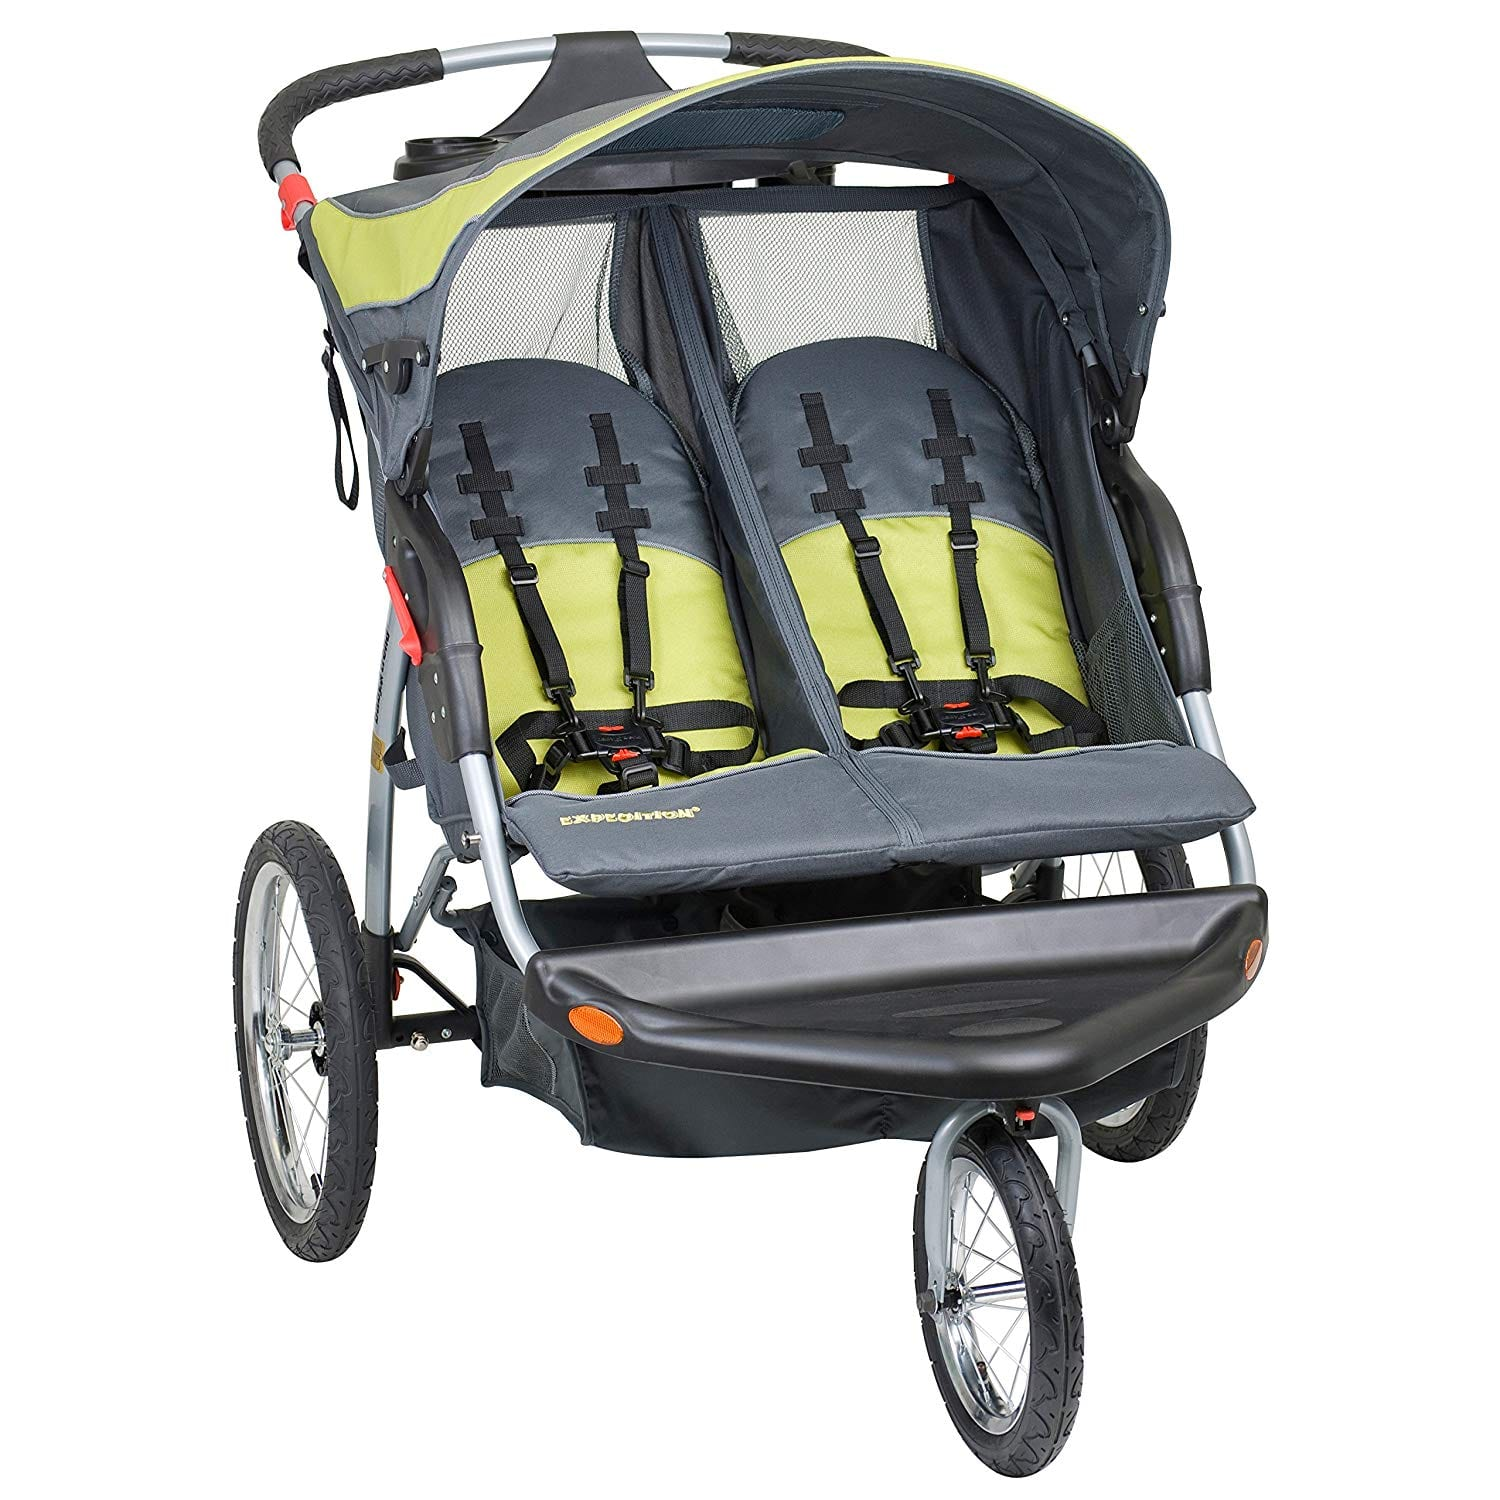 Newborn Umbrella Stroller Best Double Strollers 21 Options To Make Life More Simple